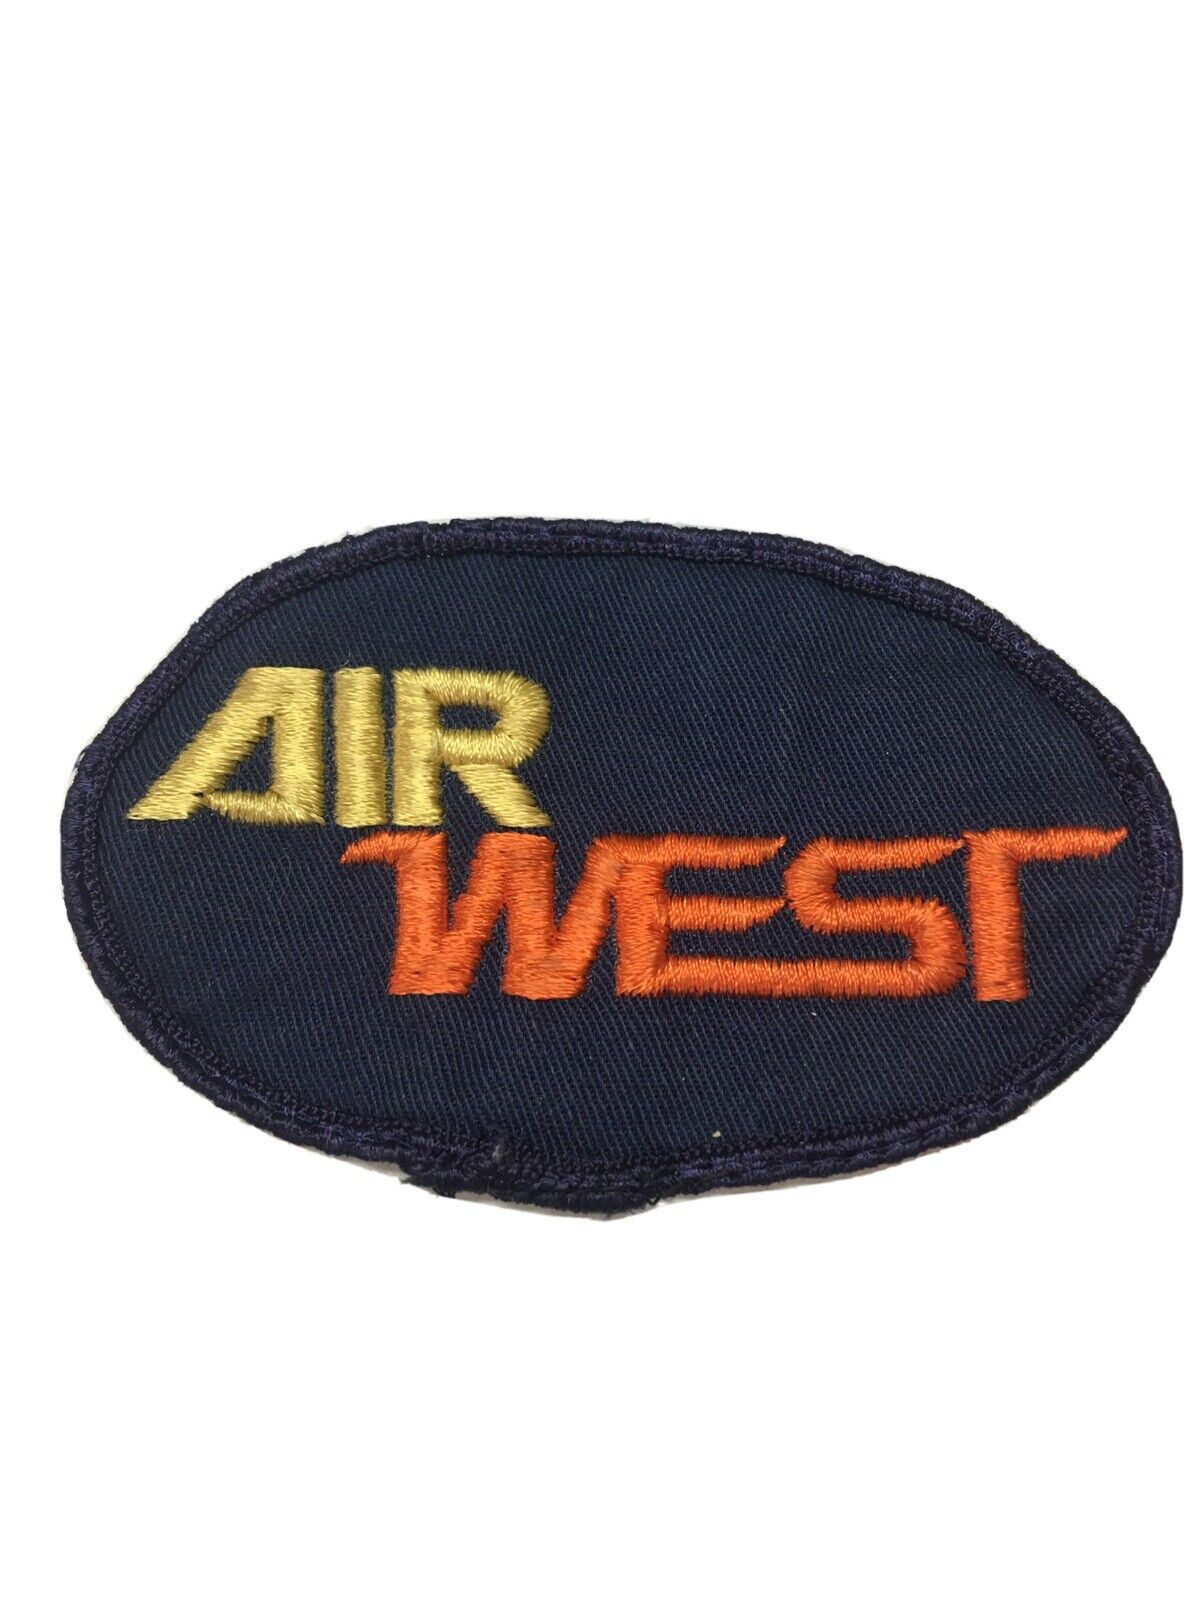 AIR WEST AIRLINES LARGE PATCH FOR UNIFORM OR COAT. VINTAGE AND PRE-OWNED